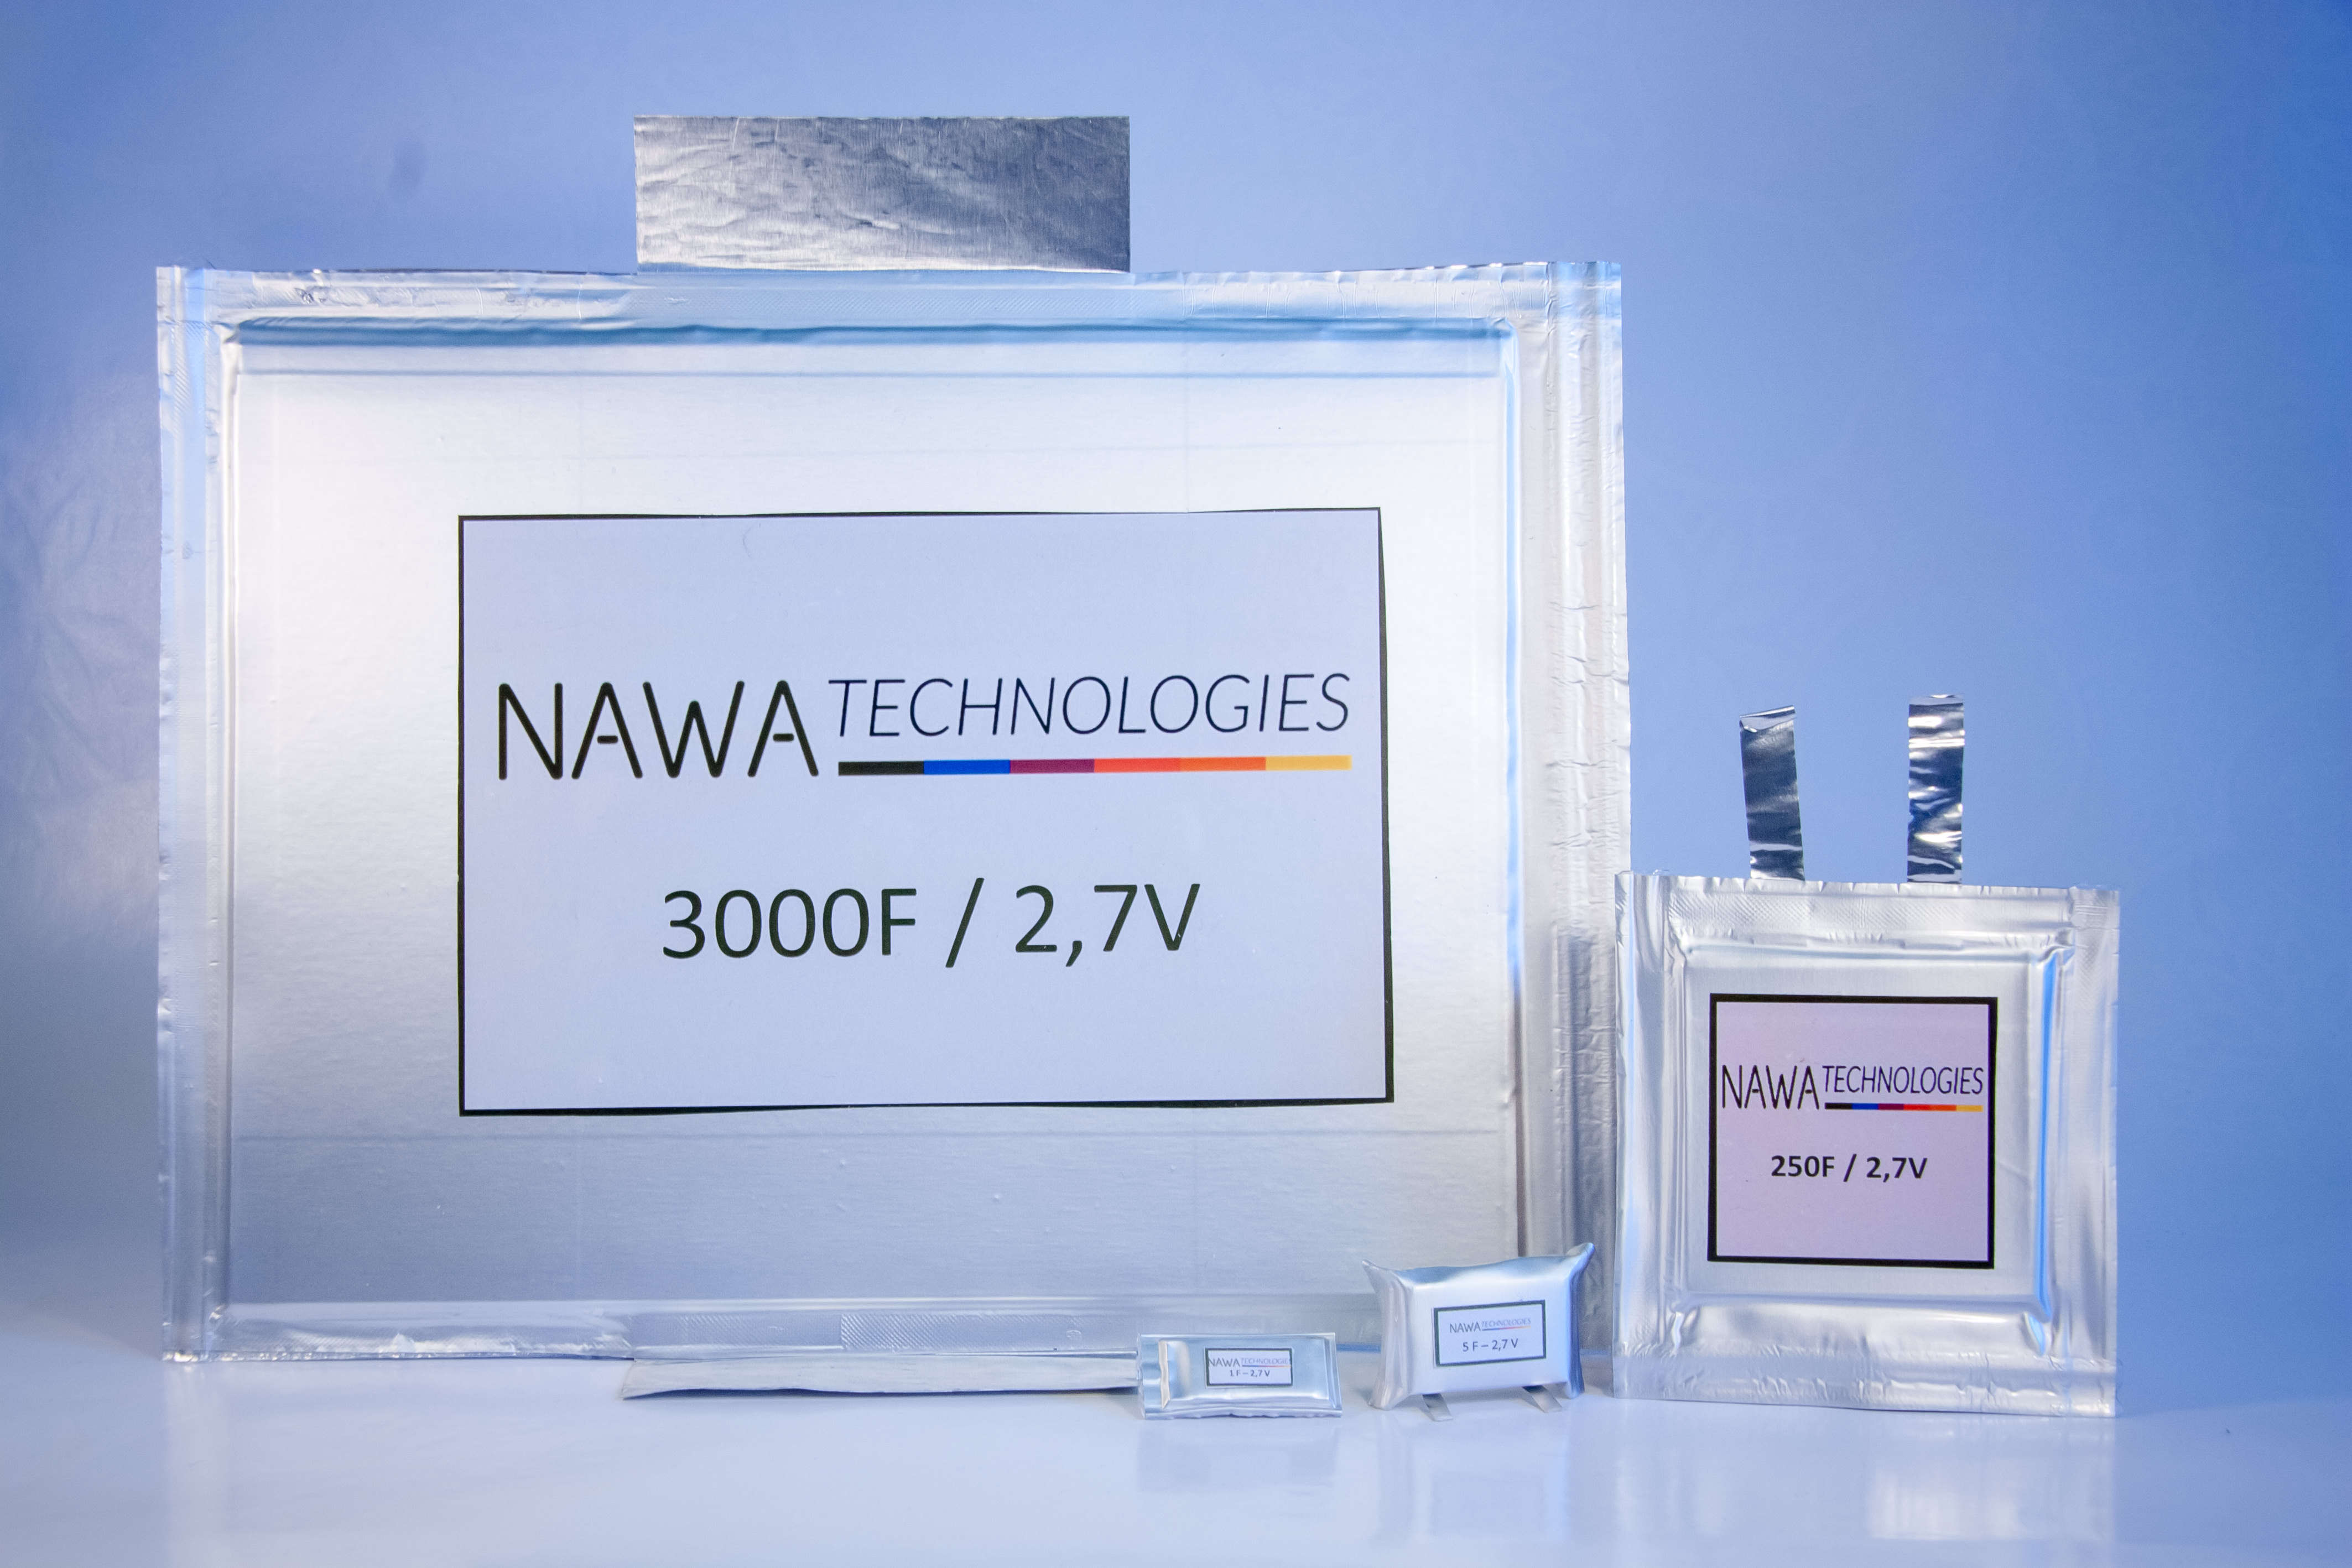 Gallery NAWACAP: High Energy High Power Ultracapacitors 4